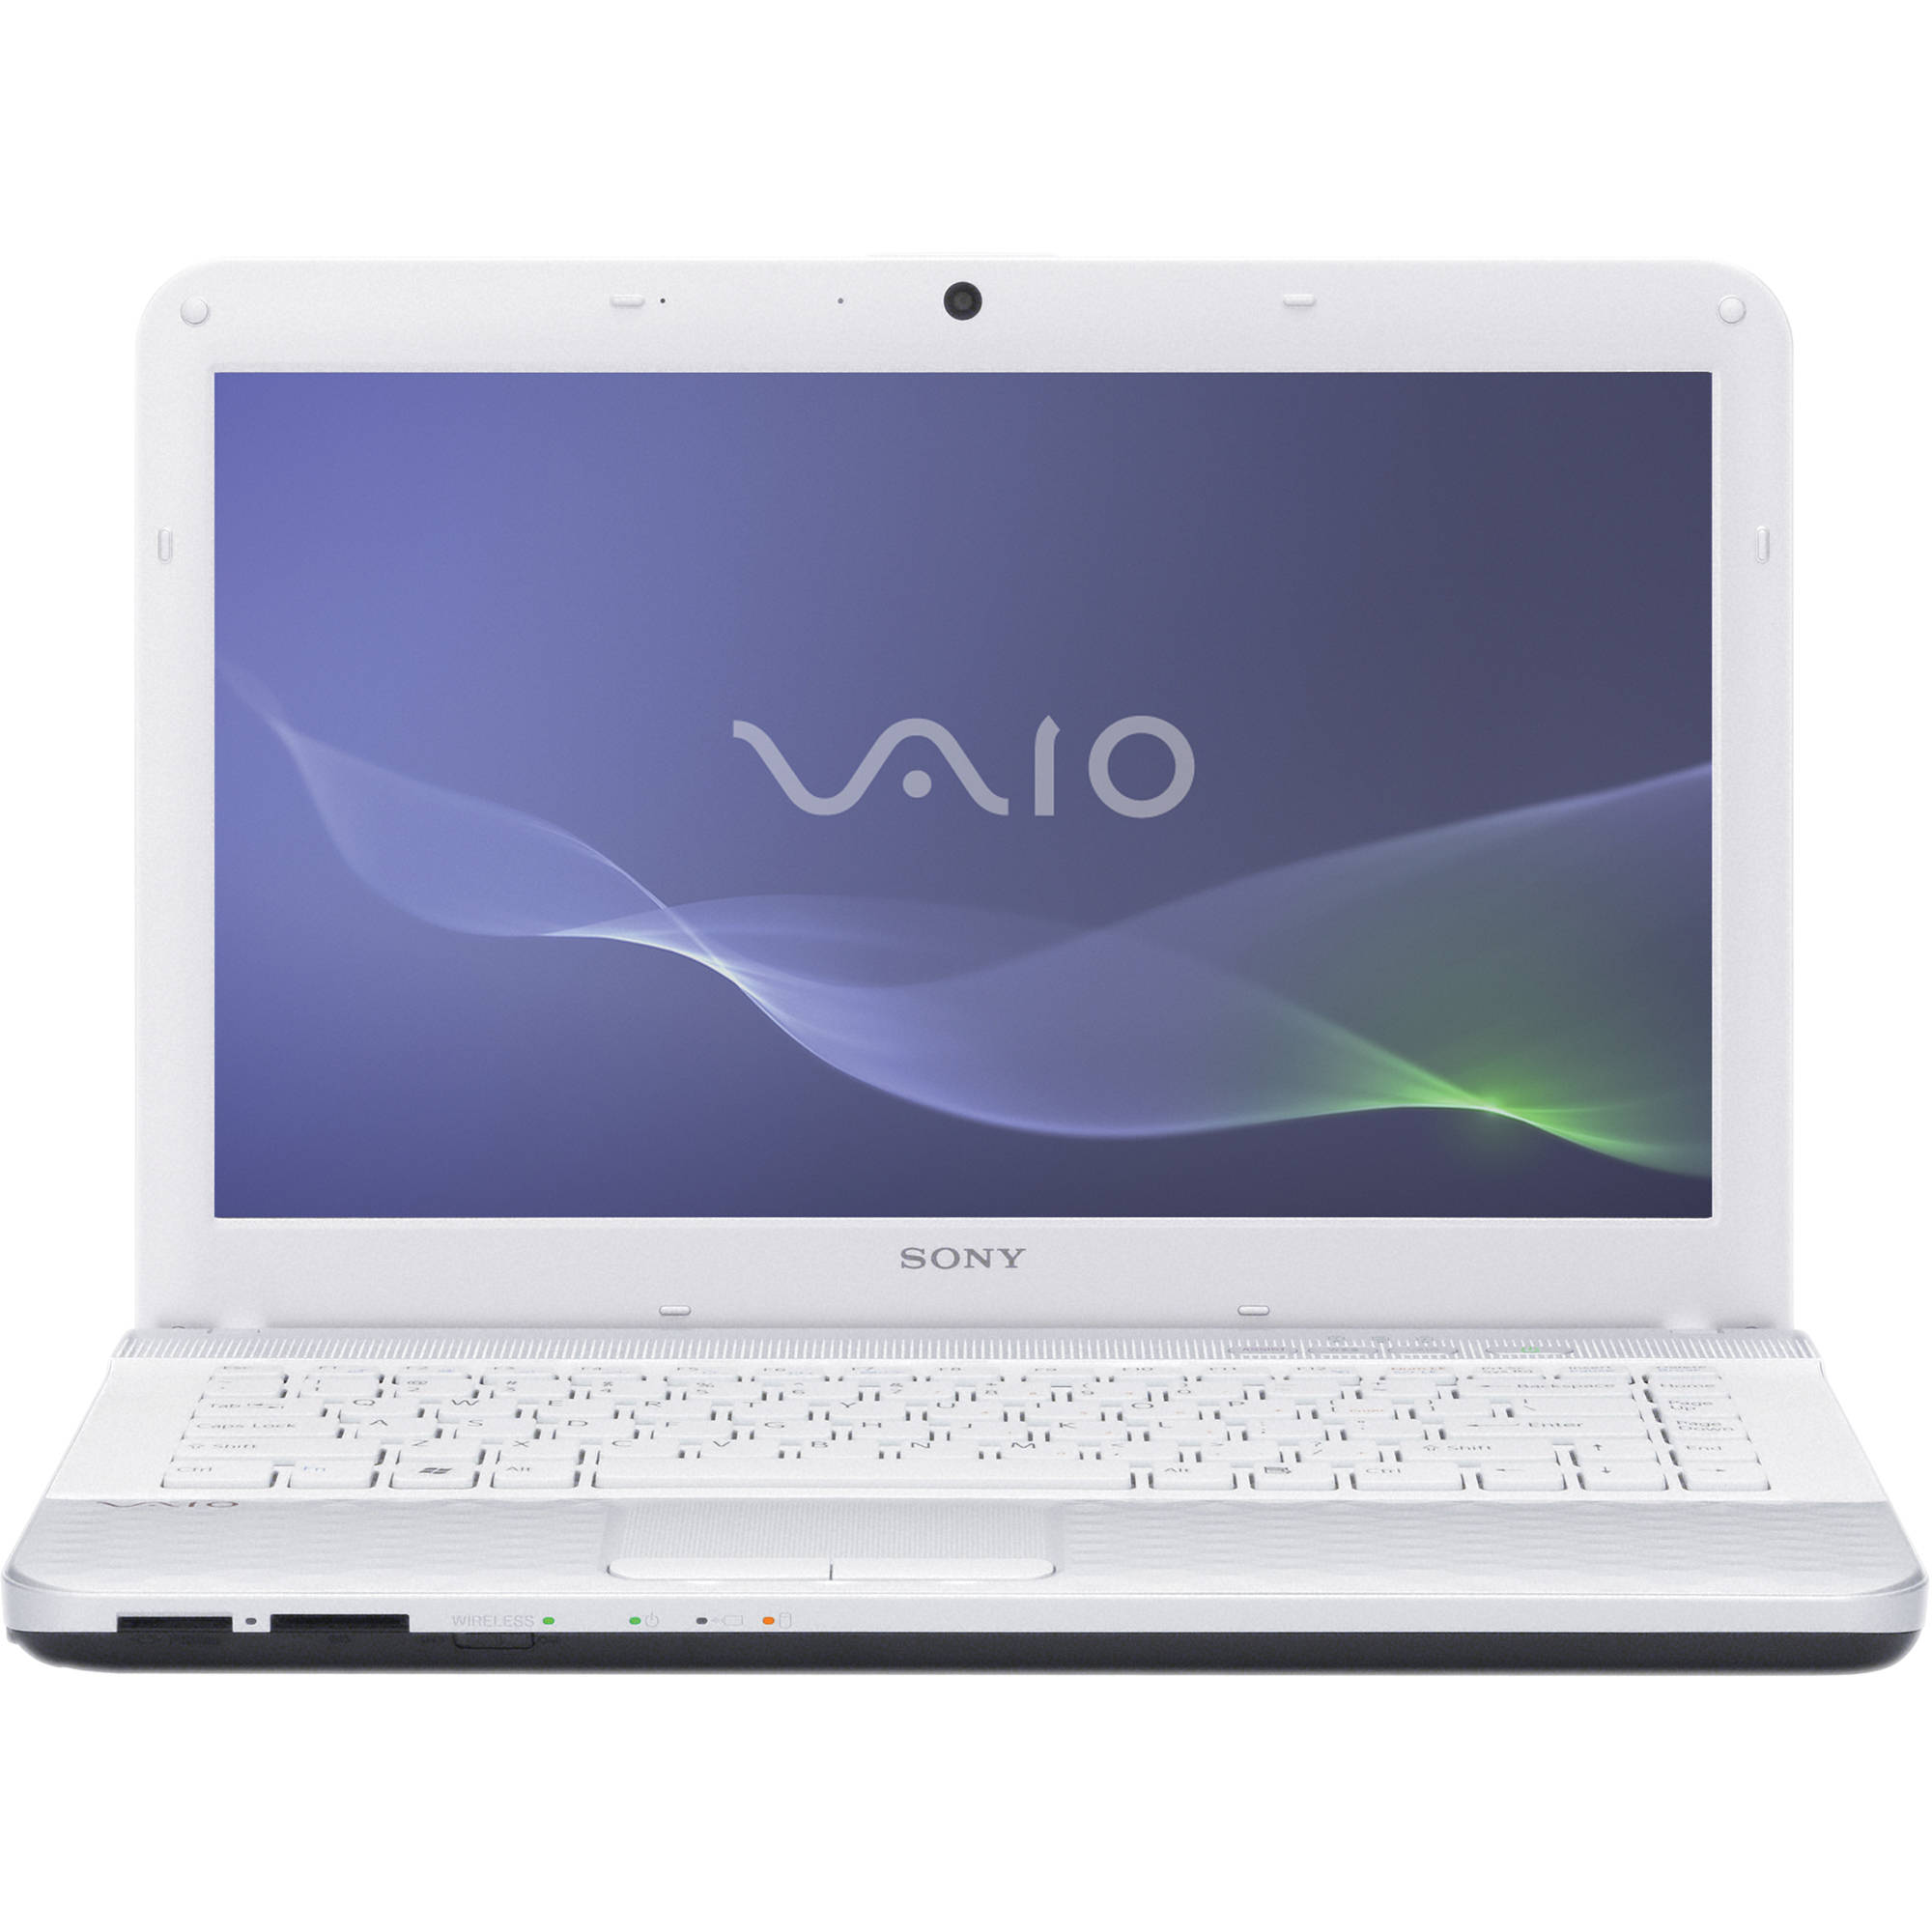 SONY VAIO VPCEG18FXP INTEL WIDI WINDOWS 7 X64 DRIVER